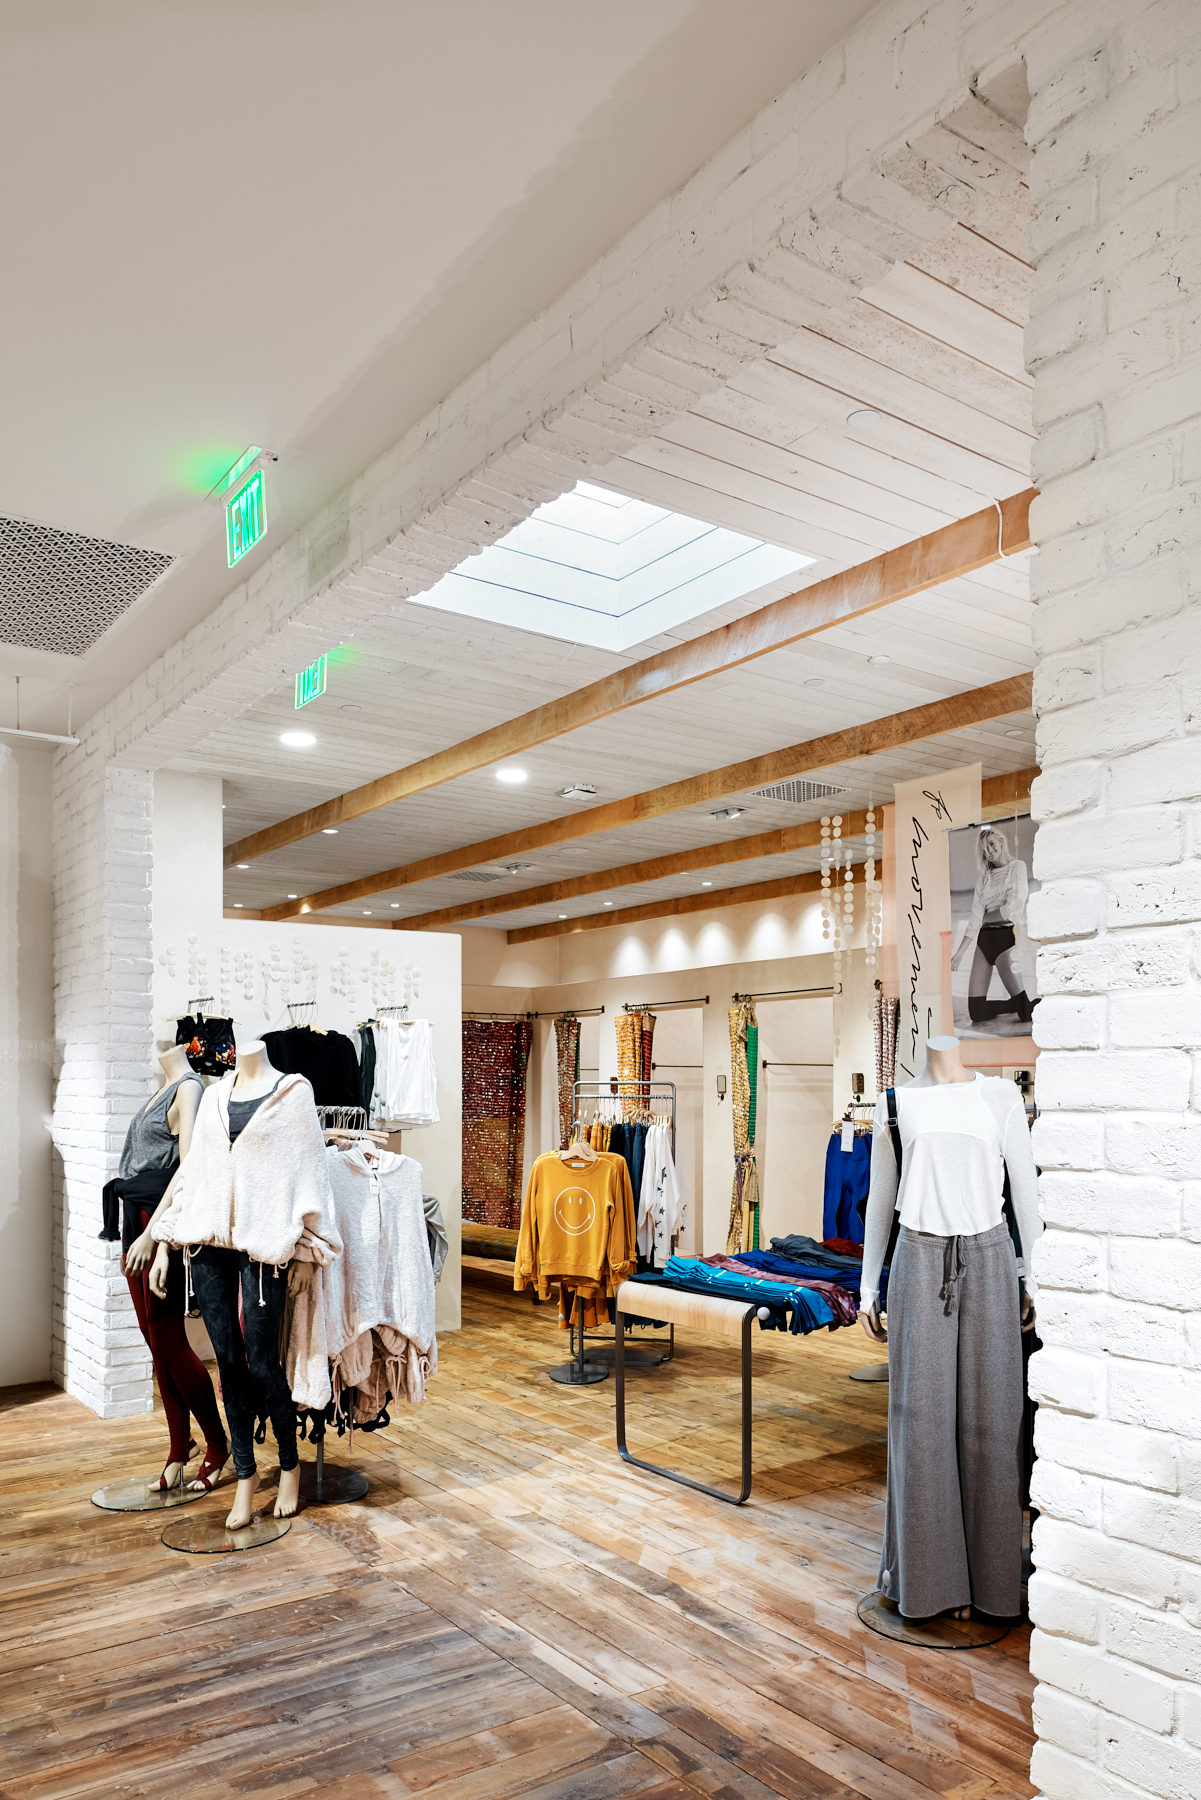 Interior design features whitewashed walls at Free People in Edina, Minnesota, created in collaboration with NewStudio Architecture